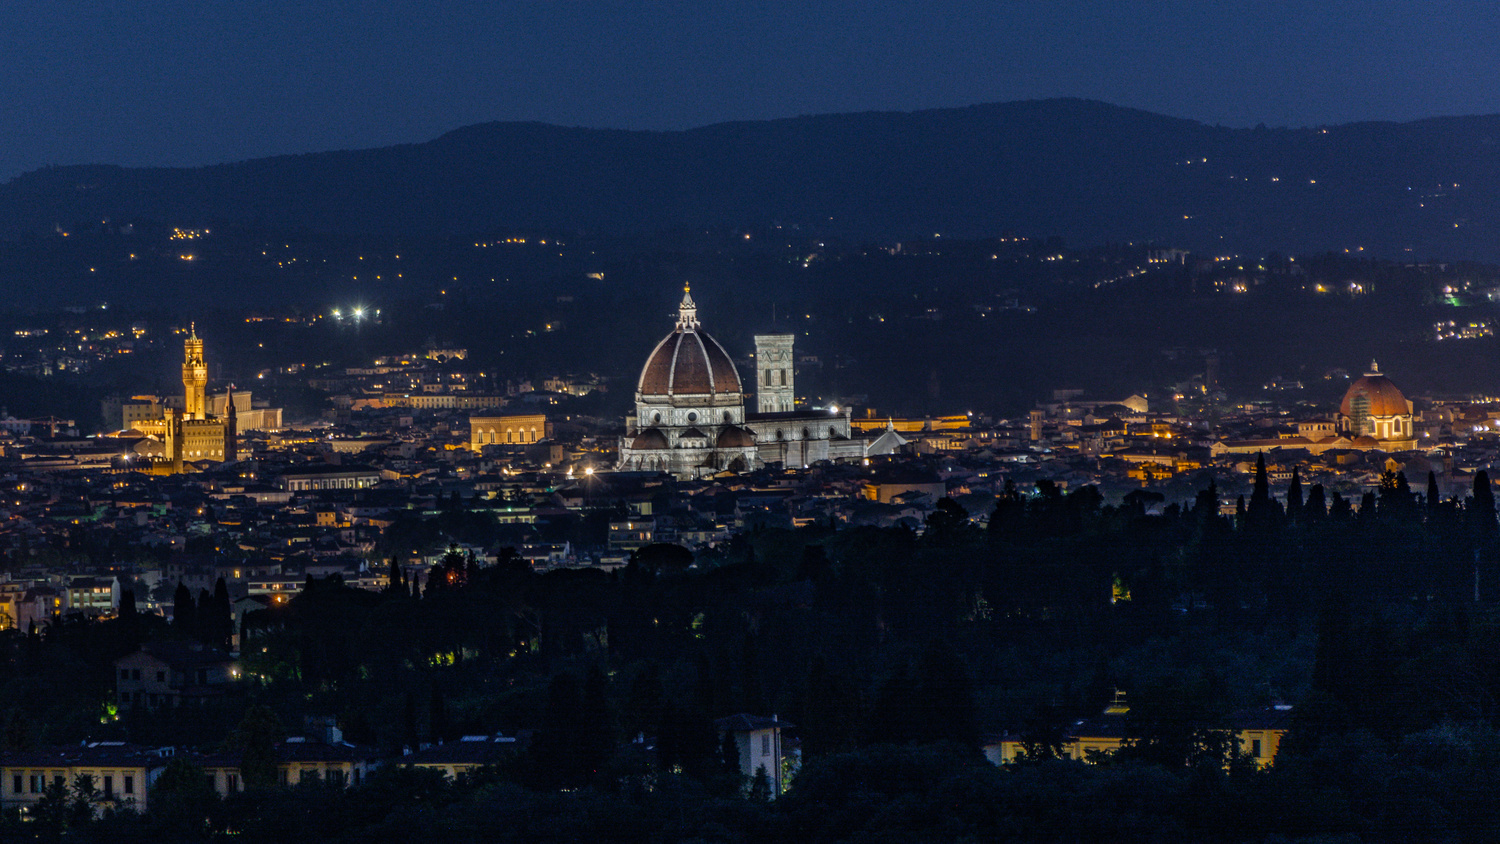 Florence Cathedral/Duomo by Nate Pool